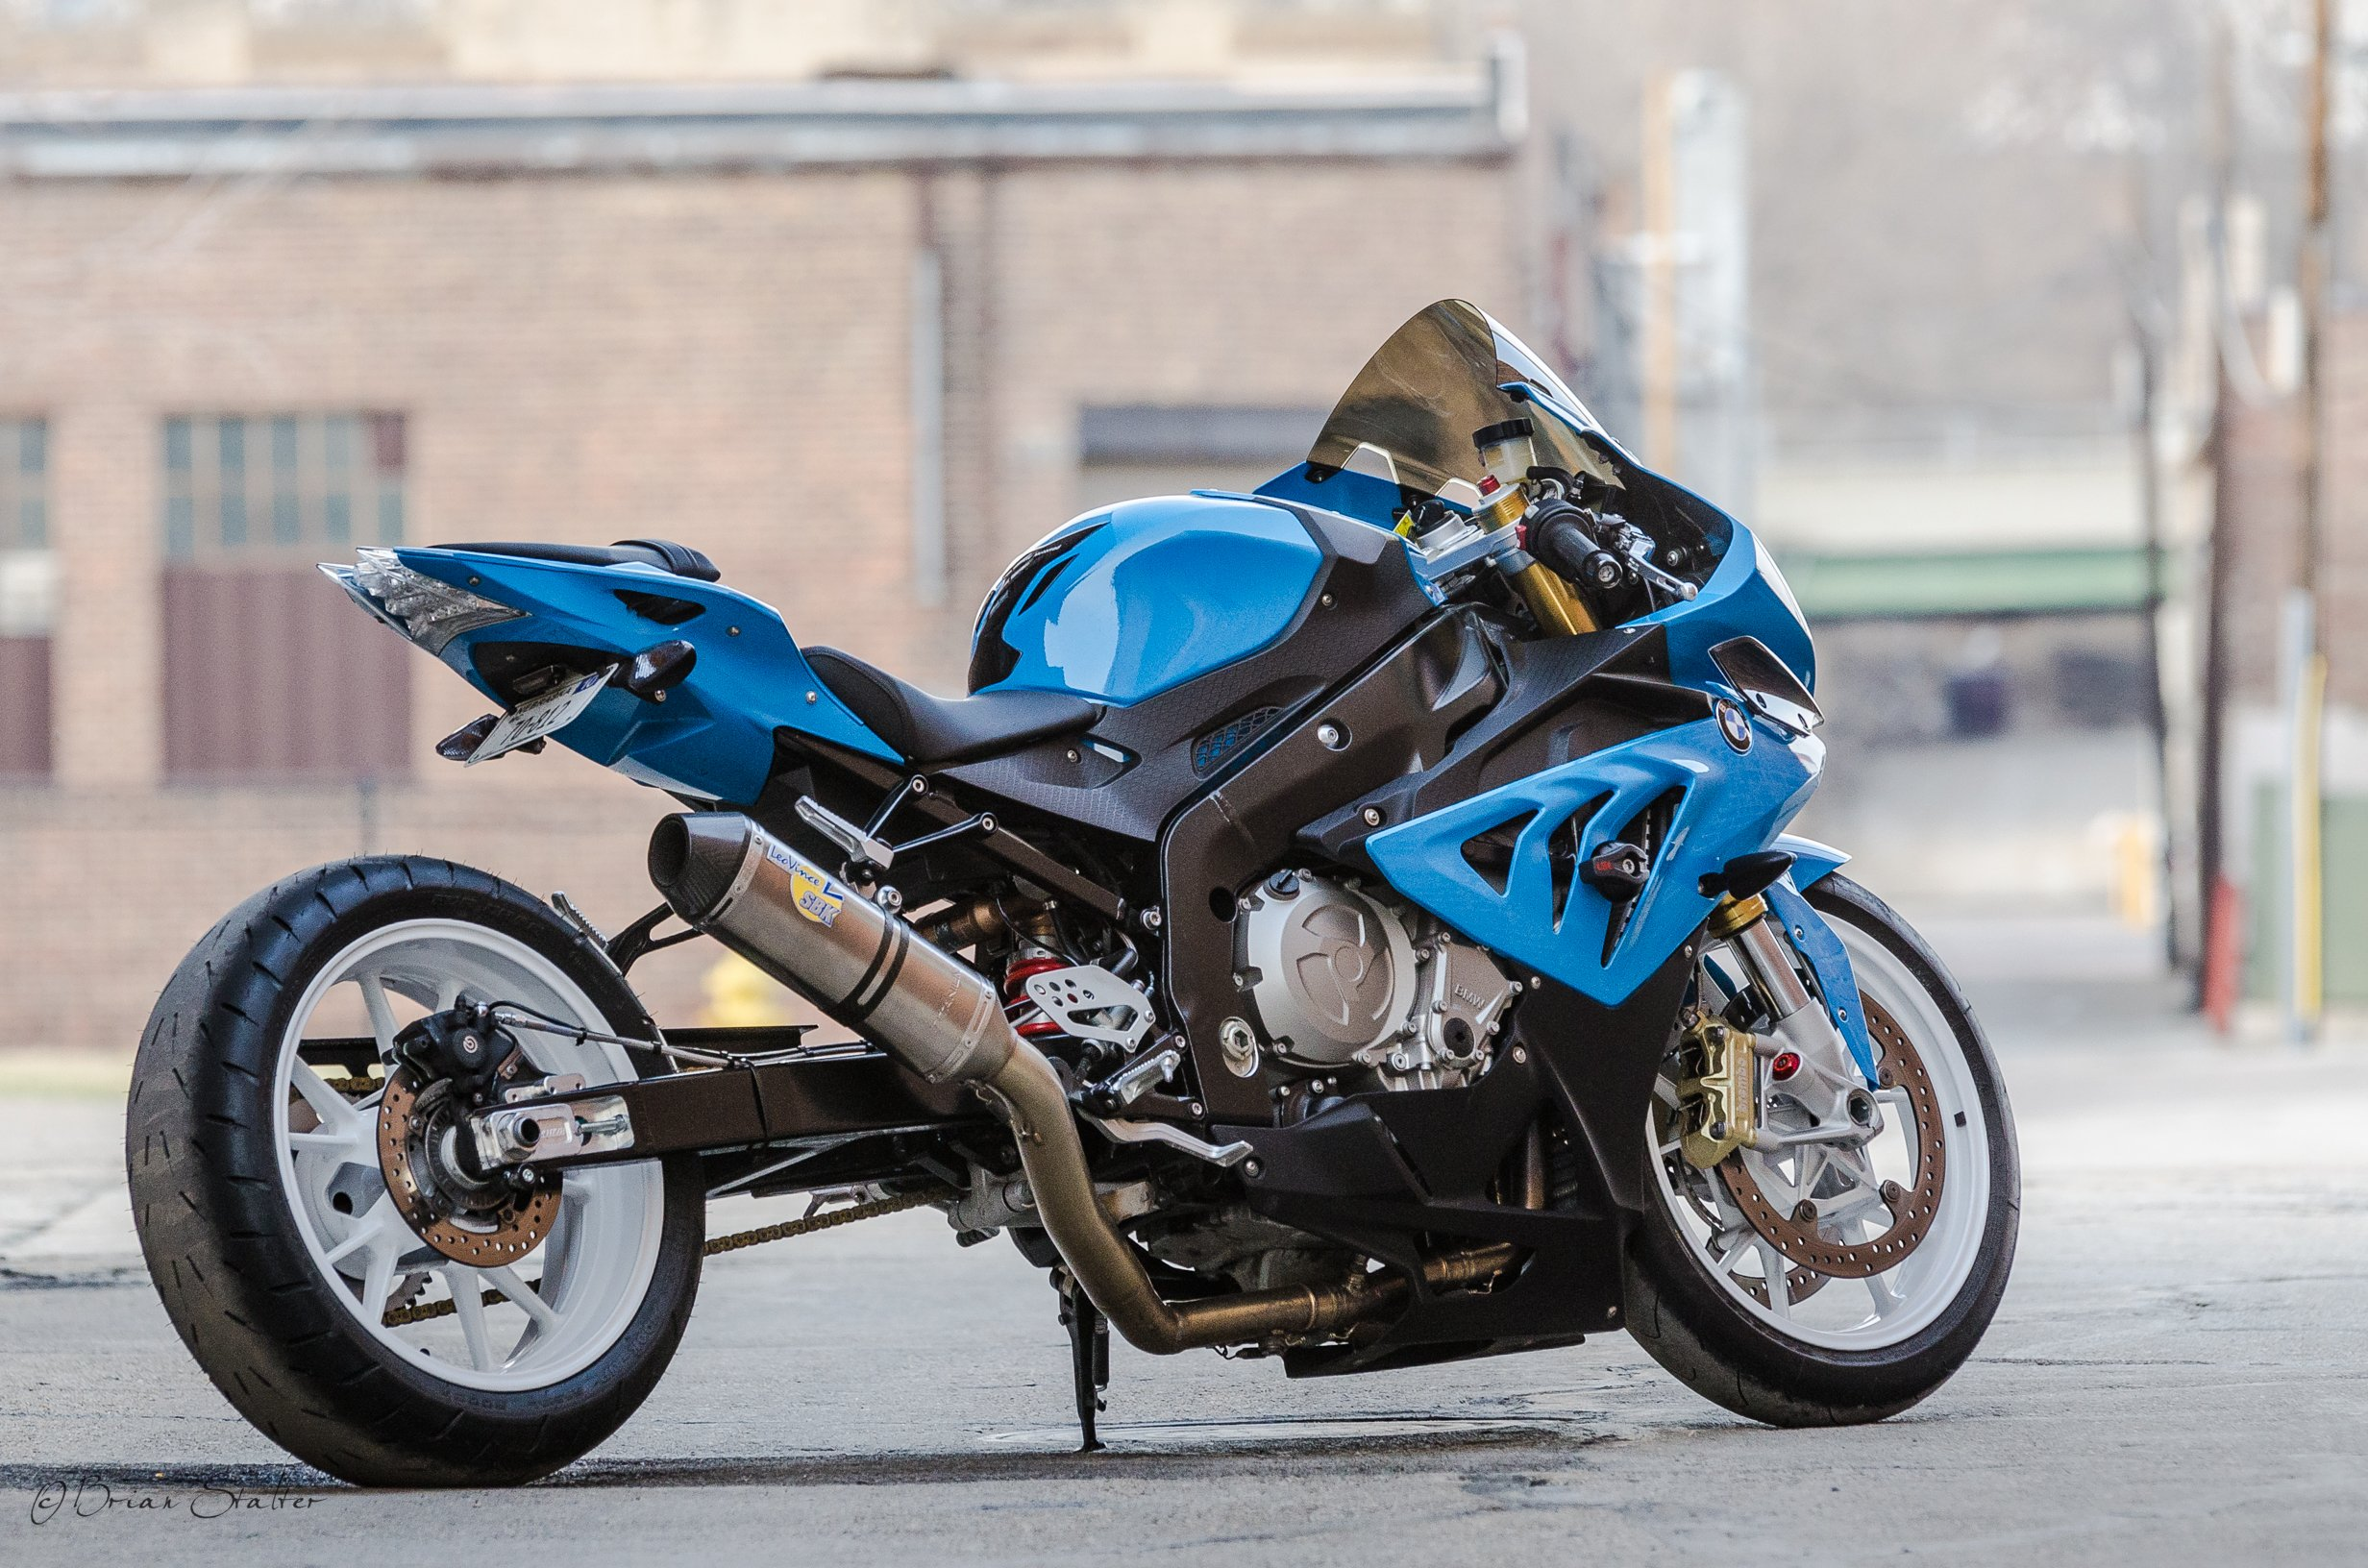 Bmw S1000rr Wallpaper Iphone 2464x1632 Wallpaper Teahub Io